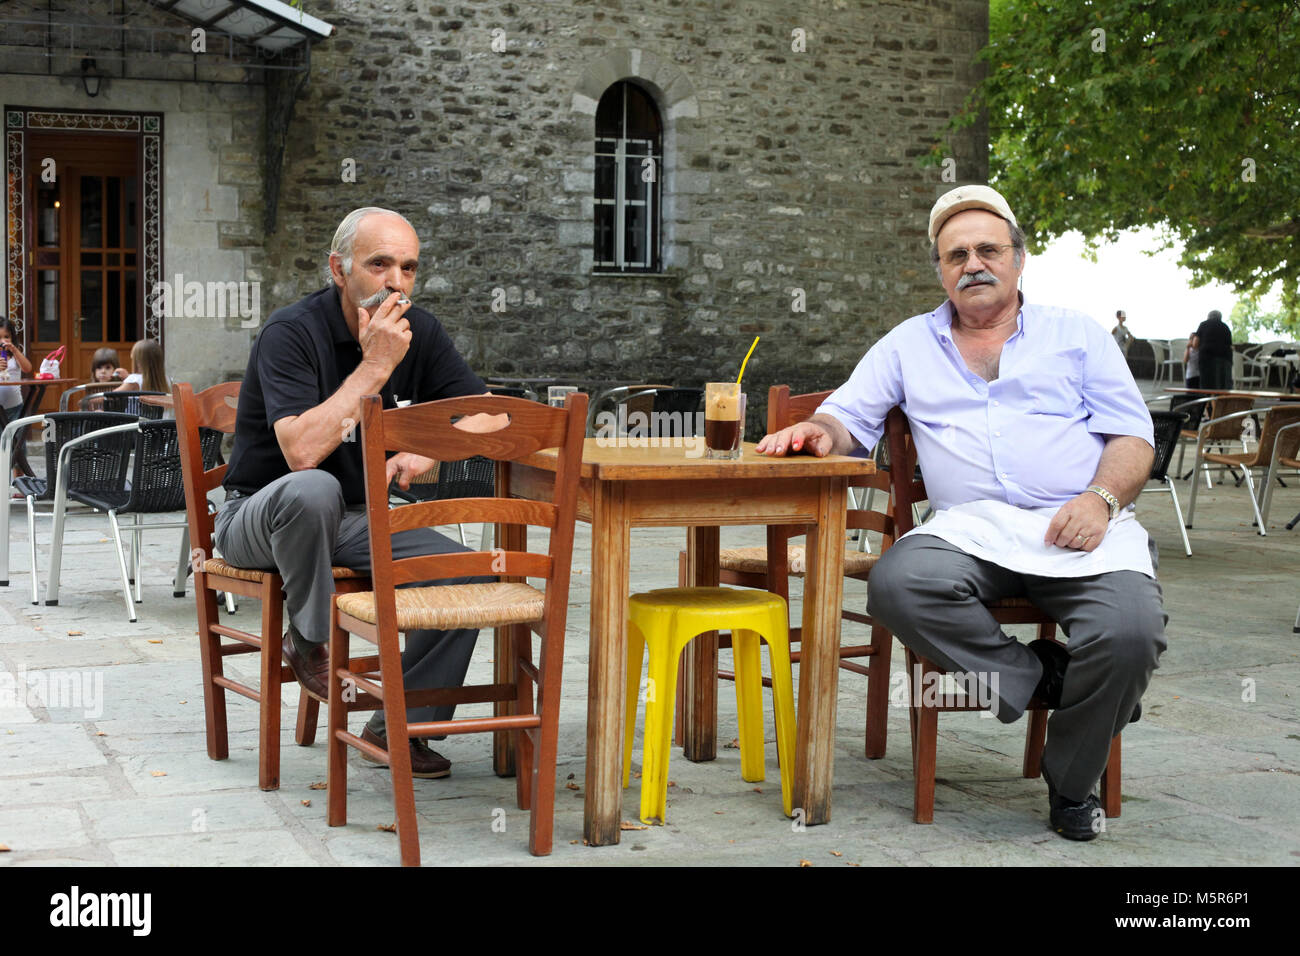 The coffee shop owner sits down for a coffee with a friend in the main square of Kypseli village, Tzoumerka, Epirus. - Stock Image